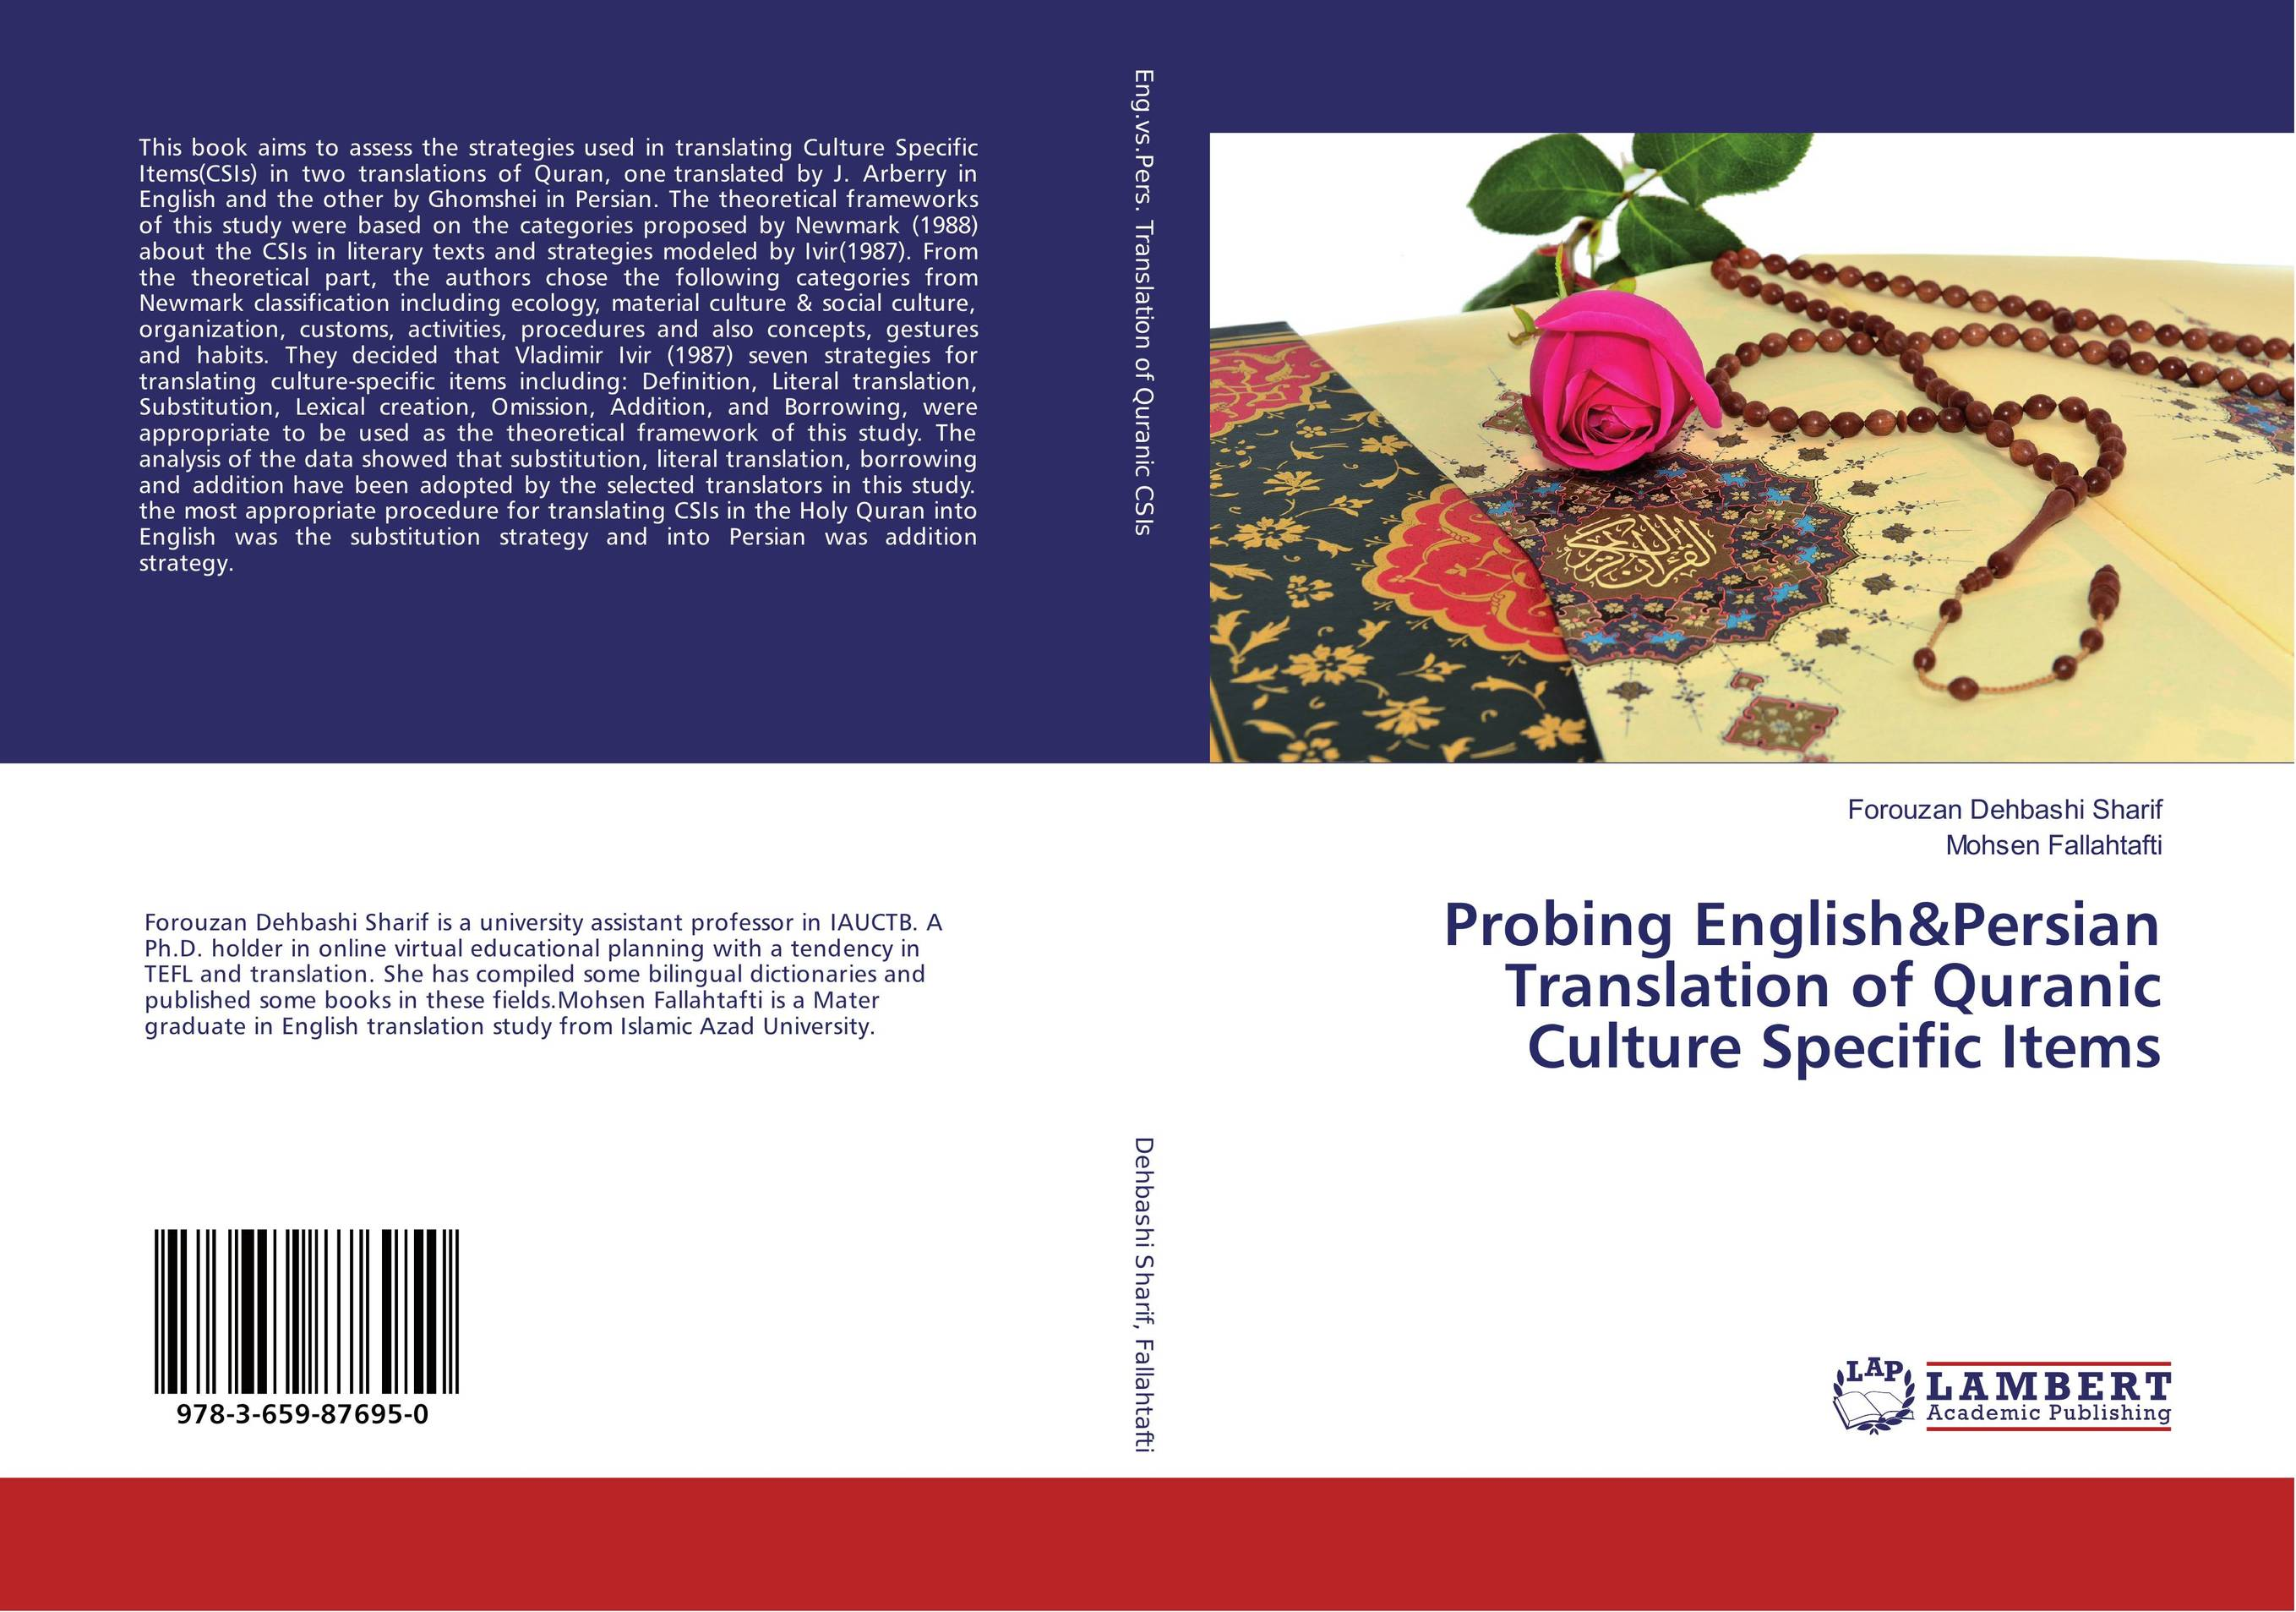 Probing English&Persian Translation of Quranic Culture Specific Items pooria alirezazadeh an analytical study of translation of stream of consciousness